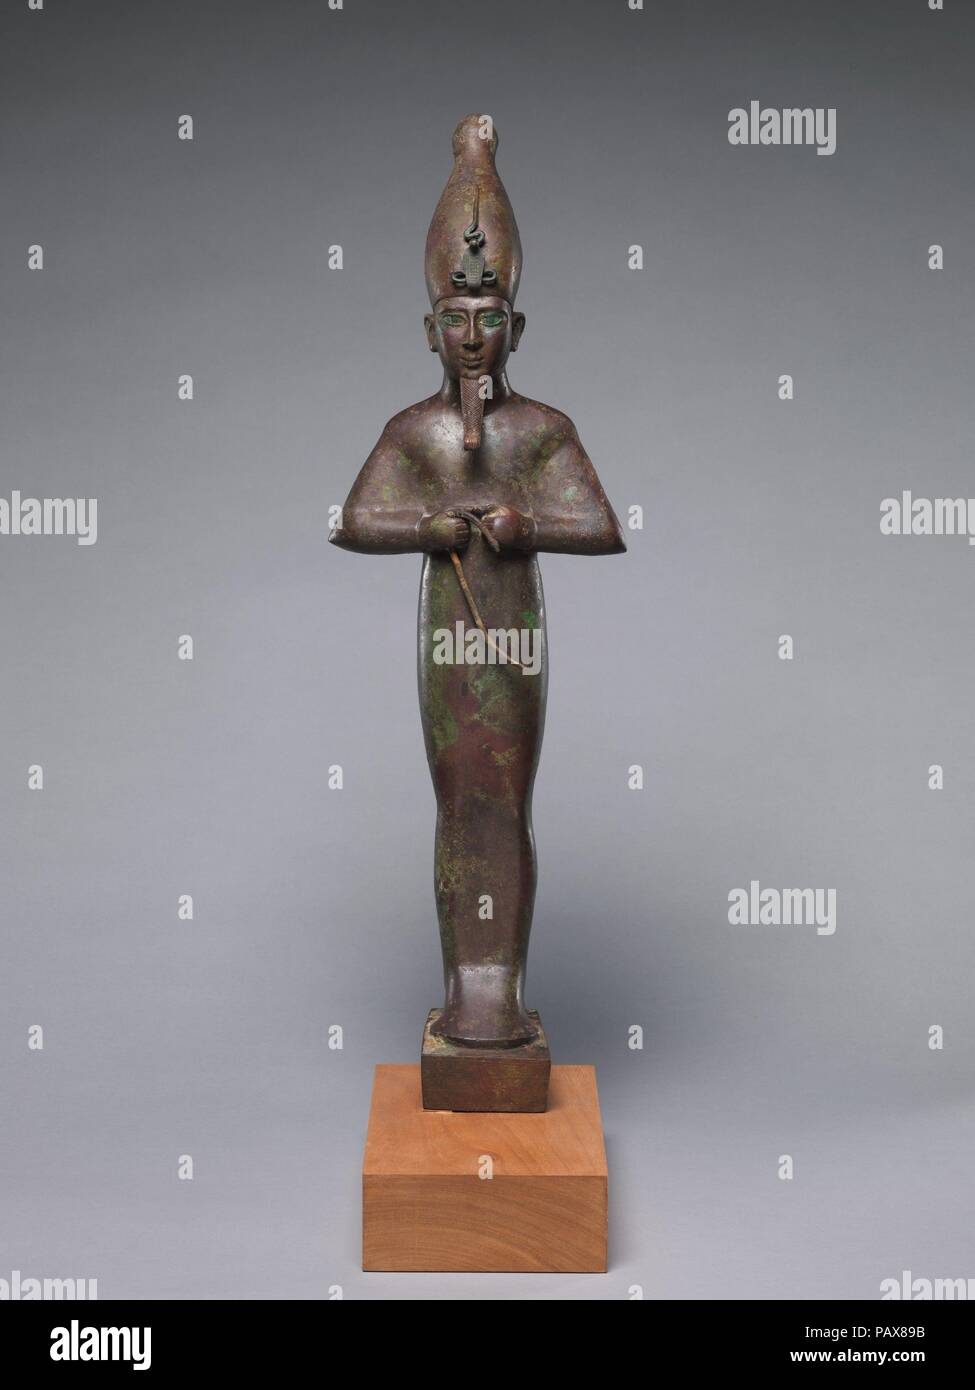 Osiris inscribed for Harkhebit, son of Padikhonsu and Isetempermes. Dimensions: H. 76 cm (29 15/16 in.); H. without tang 72 cm (28 3/8 in.); W. 22.3 cm (8 3/4 in.); D. 18.5 cm (7 5/16 in.). Date: 600-300 BC.  During the first millennium B.C. Osiris's cult became dominant and was observed in seemingly every temple in the land. This large Osiris was dedicated somewhere at Memphis. After a period, which might even be hundreds of years, it was removed with other figures - including 10.175.131, .132 and .134 - for  respectful burial within the temple precincts.  The statue's facial features - uptur Stock Photo